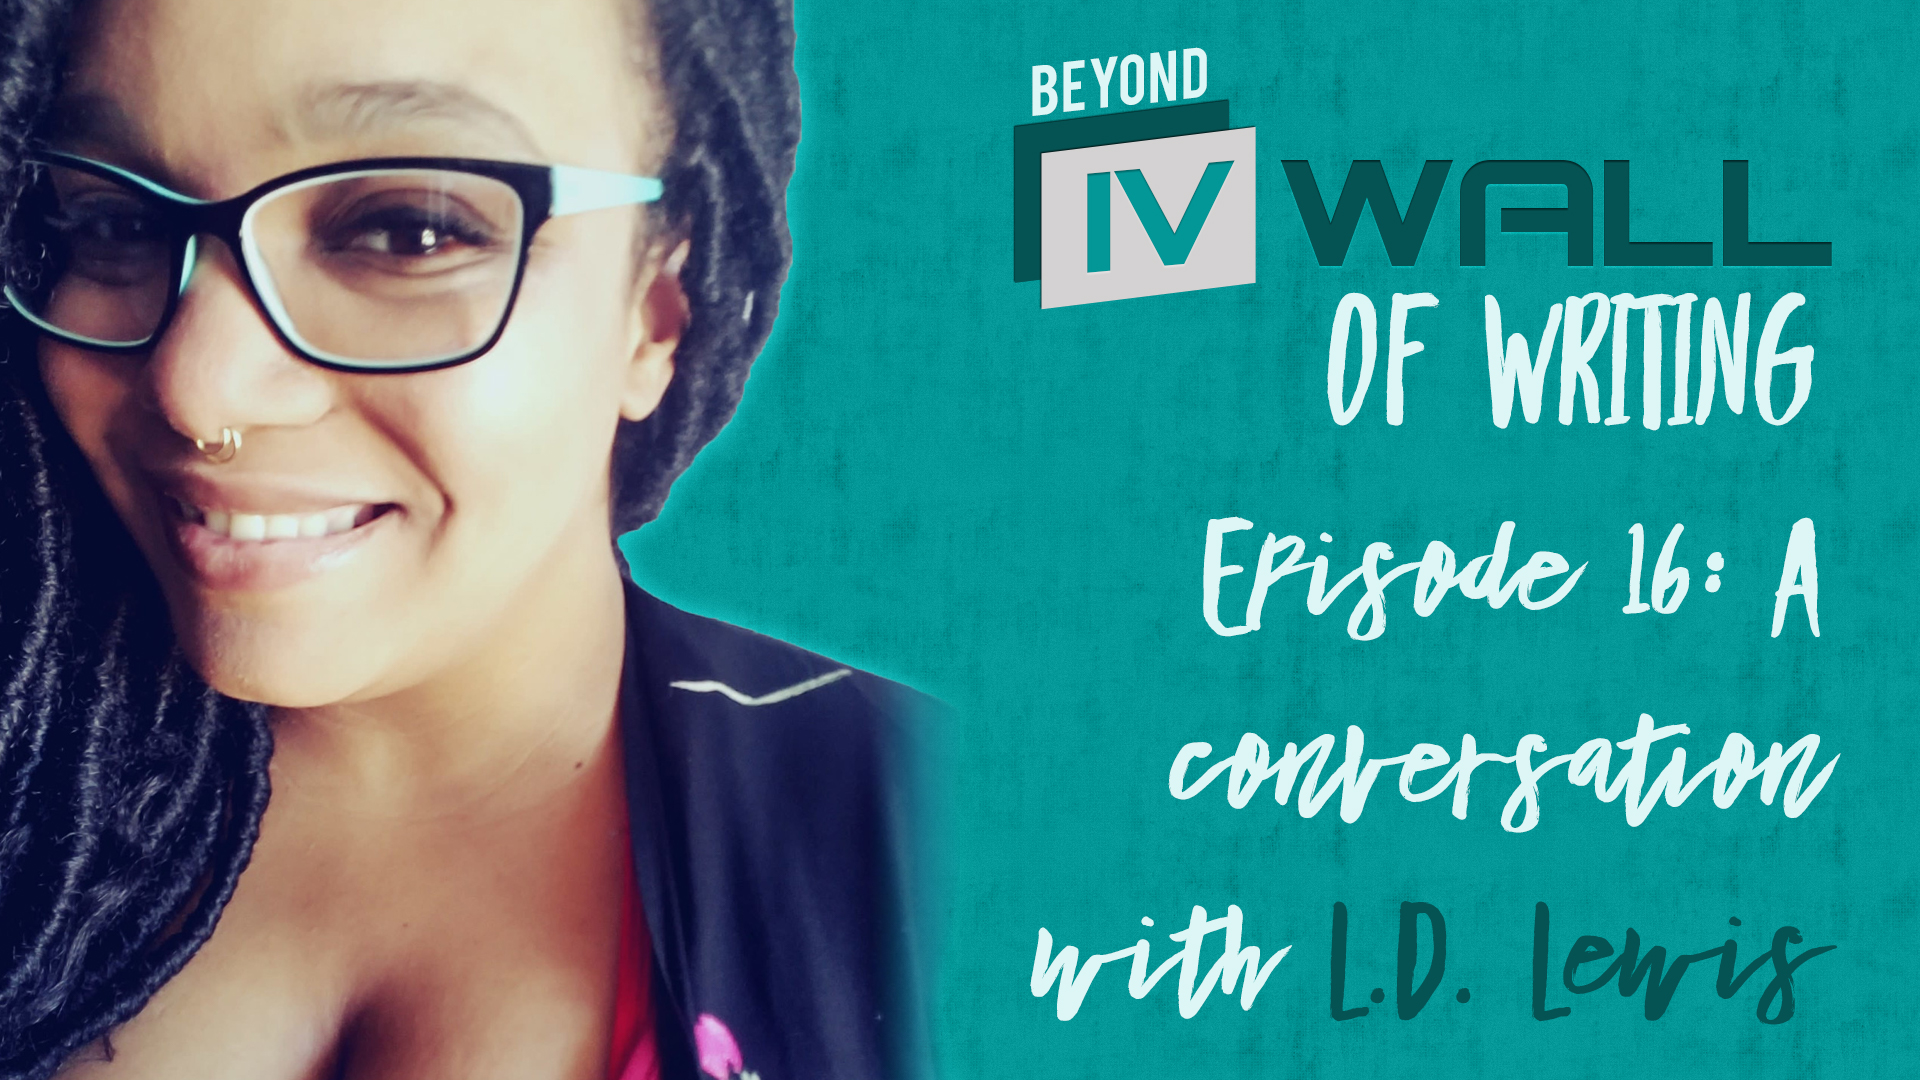 Beyond the IVWall of Writing Episode 16- A Conversation with L.D. Lewis